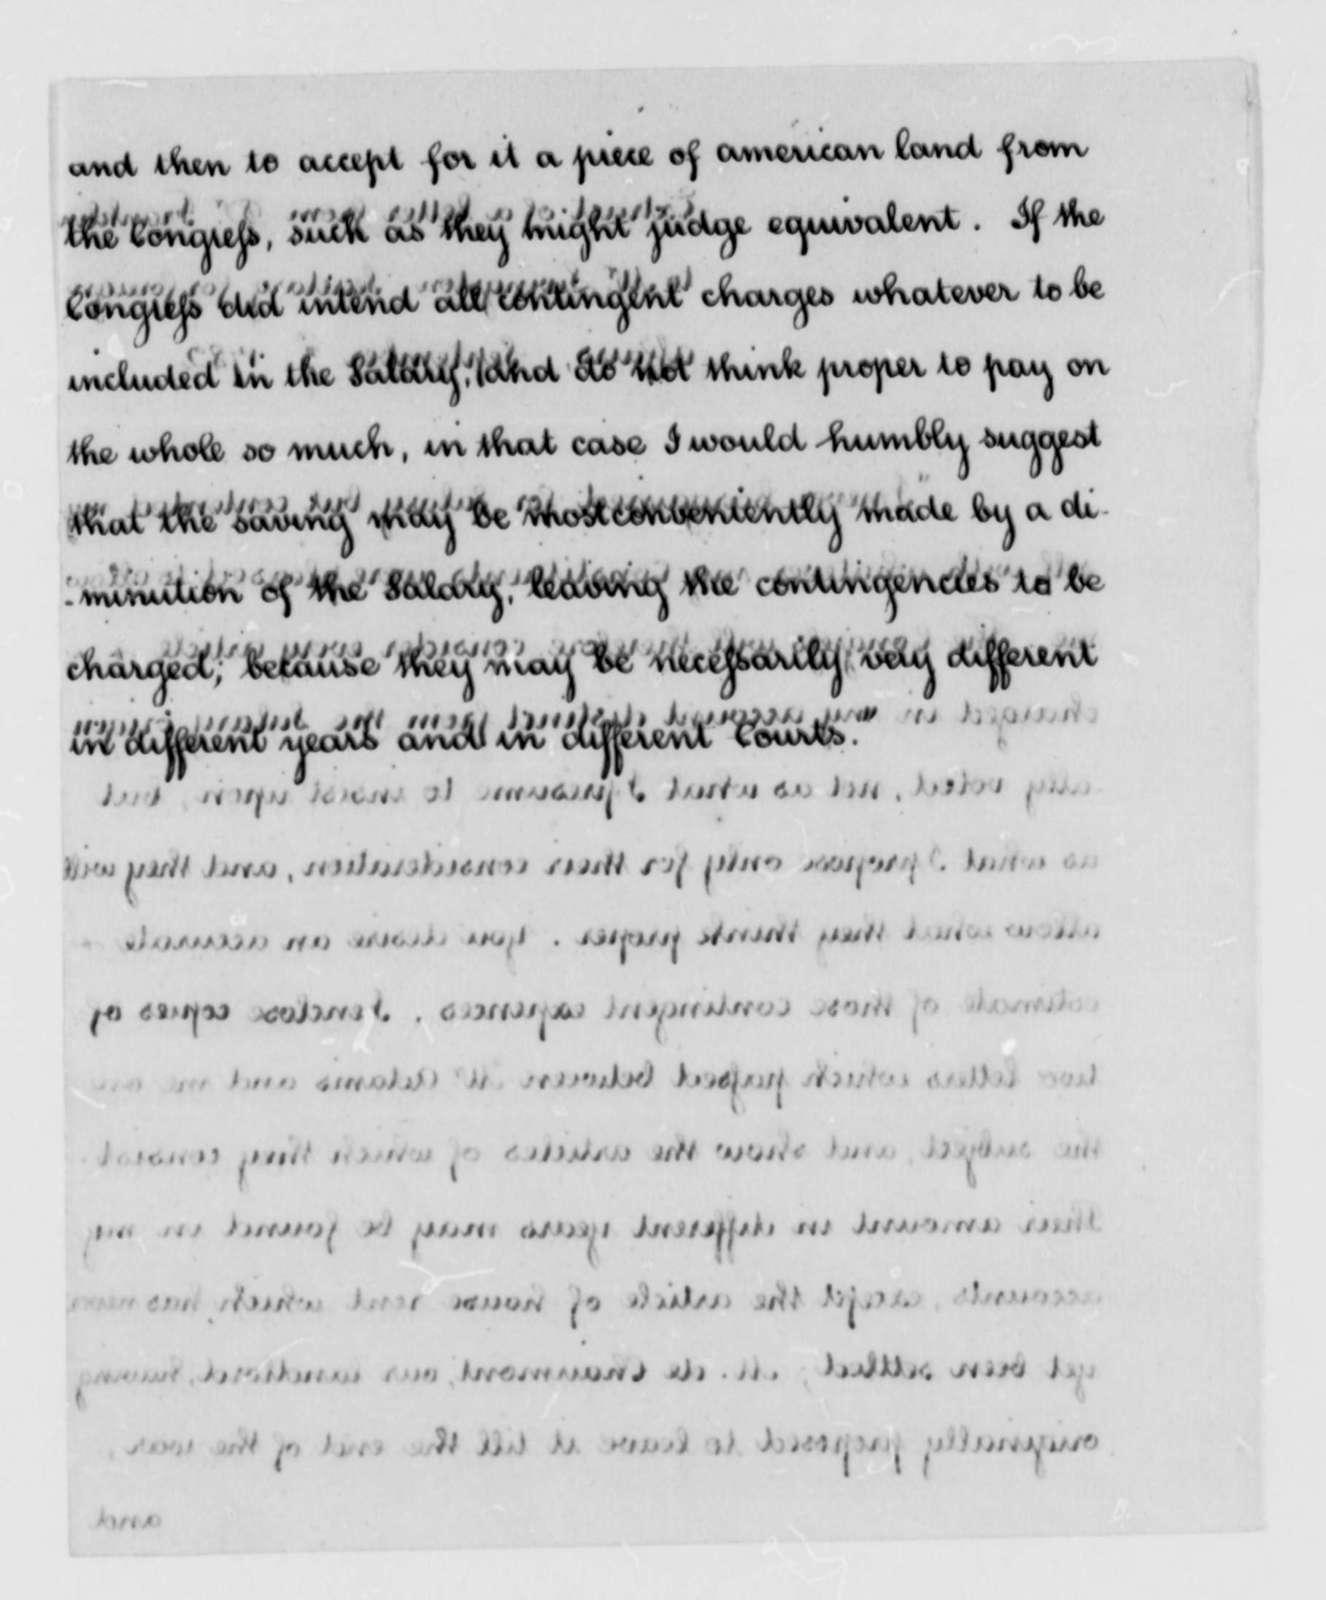 Benjamin Franklin to Robert R. Livingston, September 3, 1782, Extract and Copy